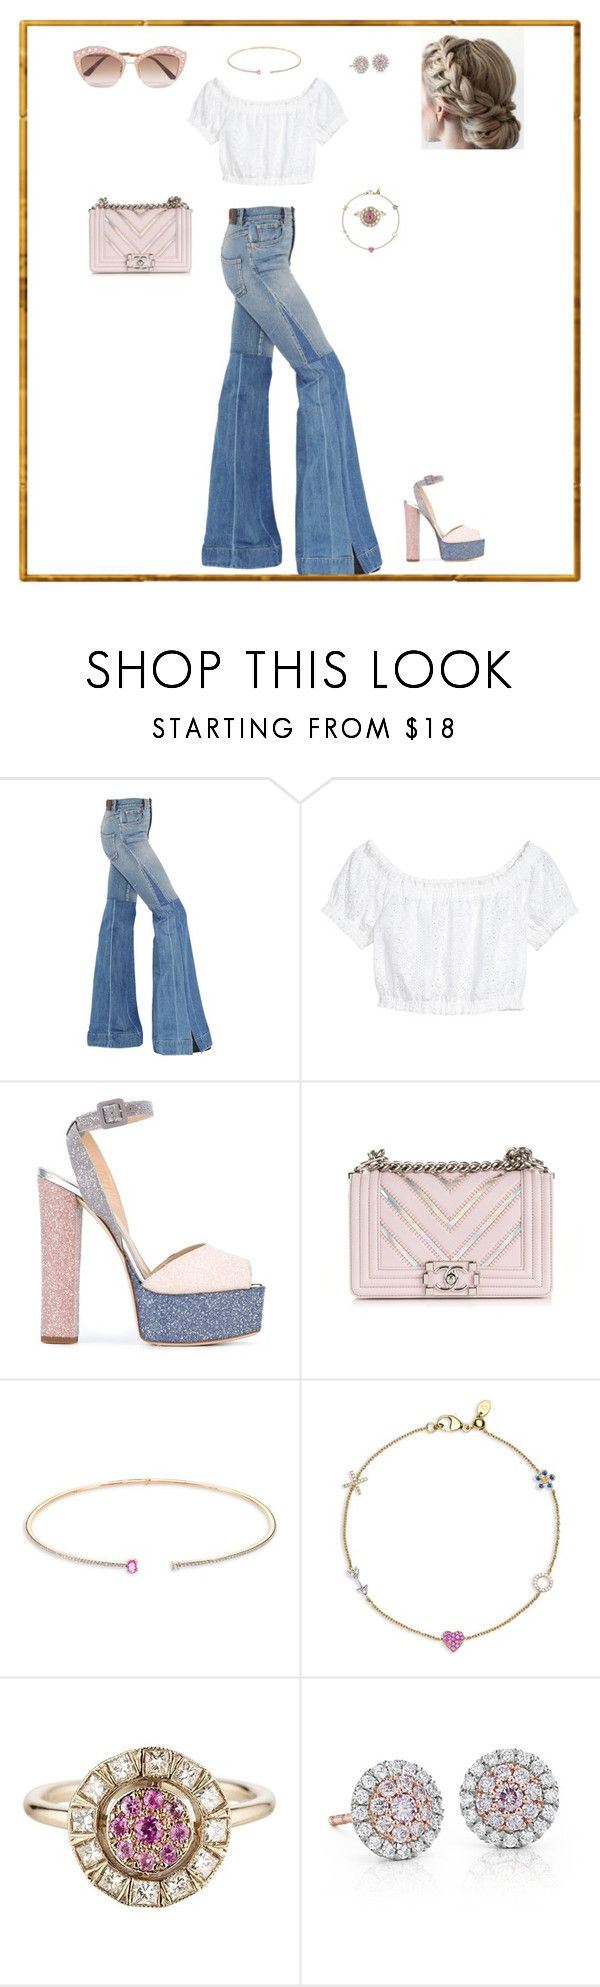 """Untitled #51"" by sb187 ❤ liked on Polyvore featuring Roberto Cavalli, Giuseppe Zanotti, Chanel, Hueb, Loquet, Sabine Getty, Blue Nile and Gucci"